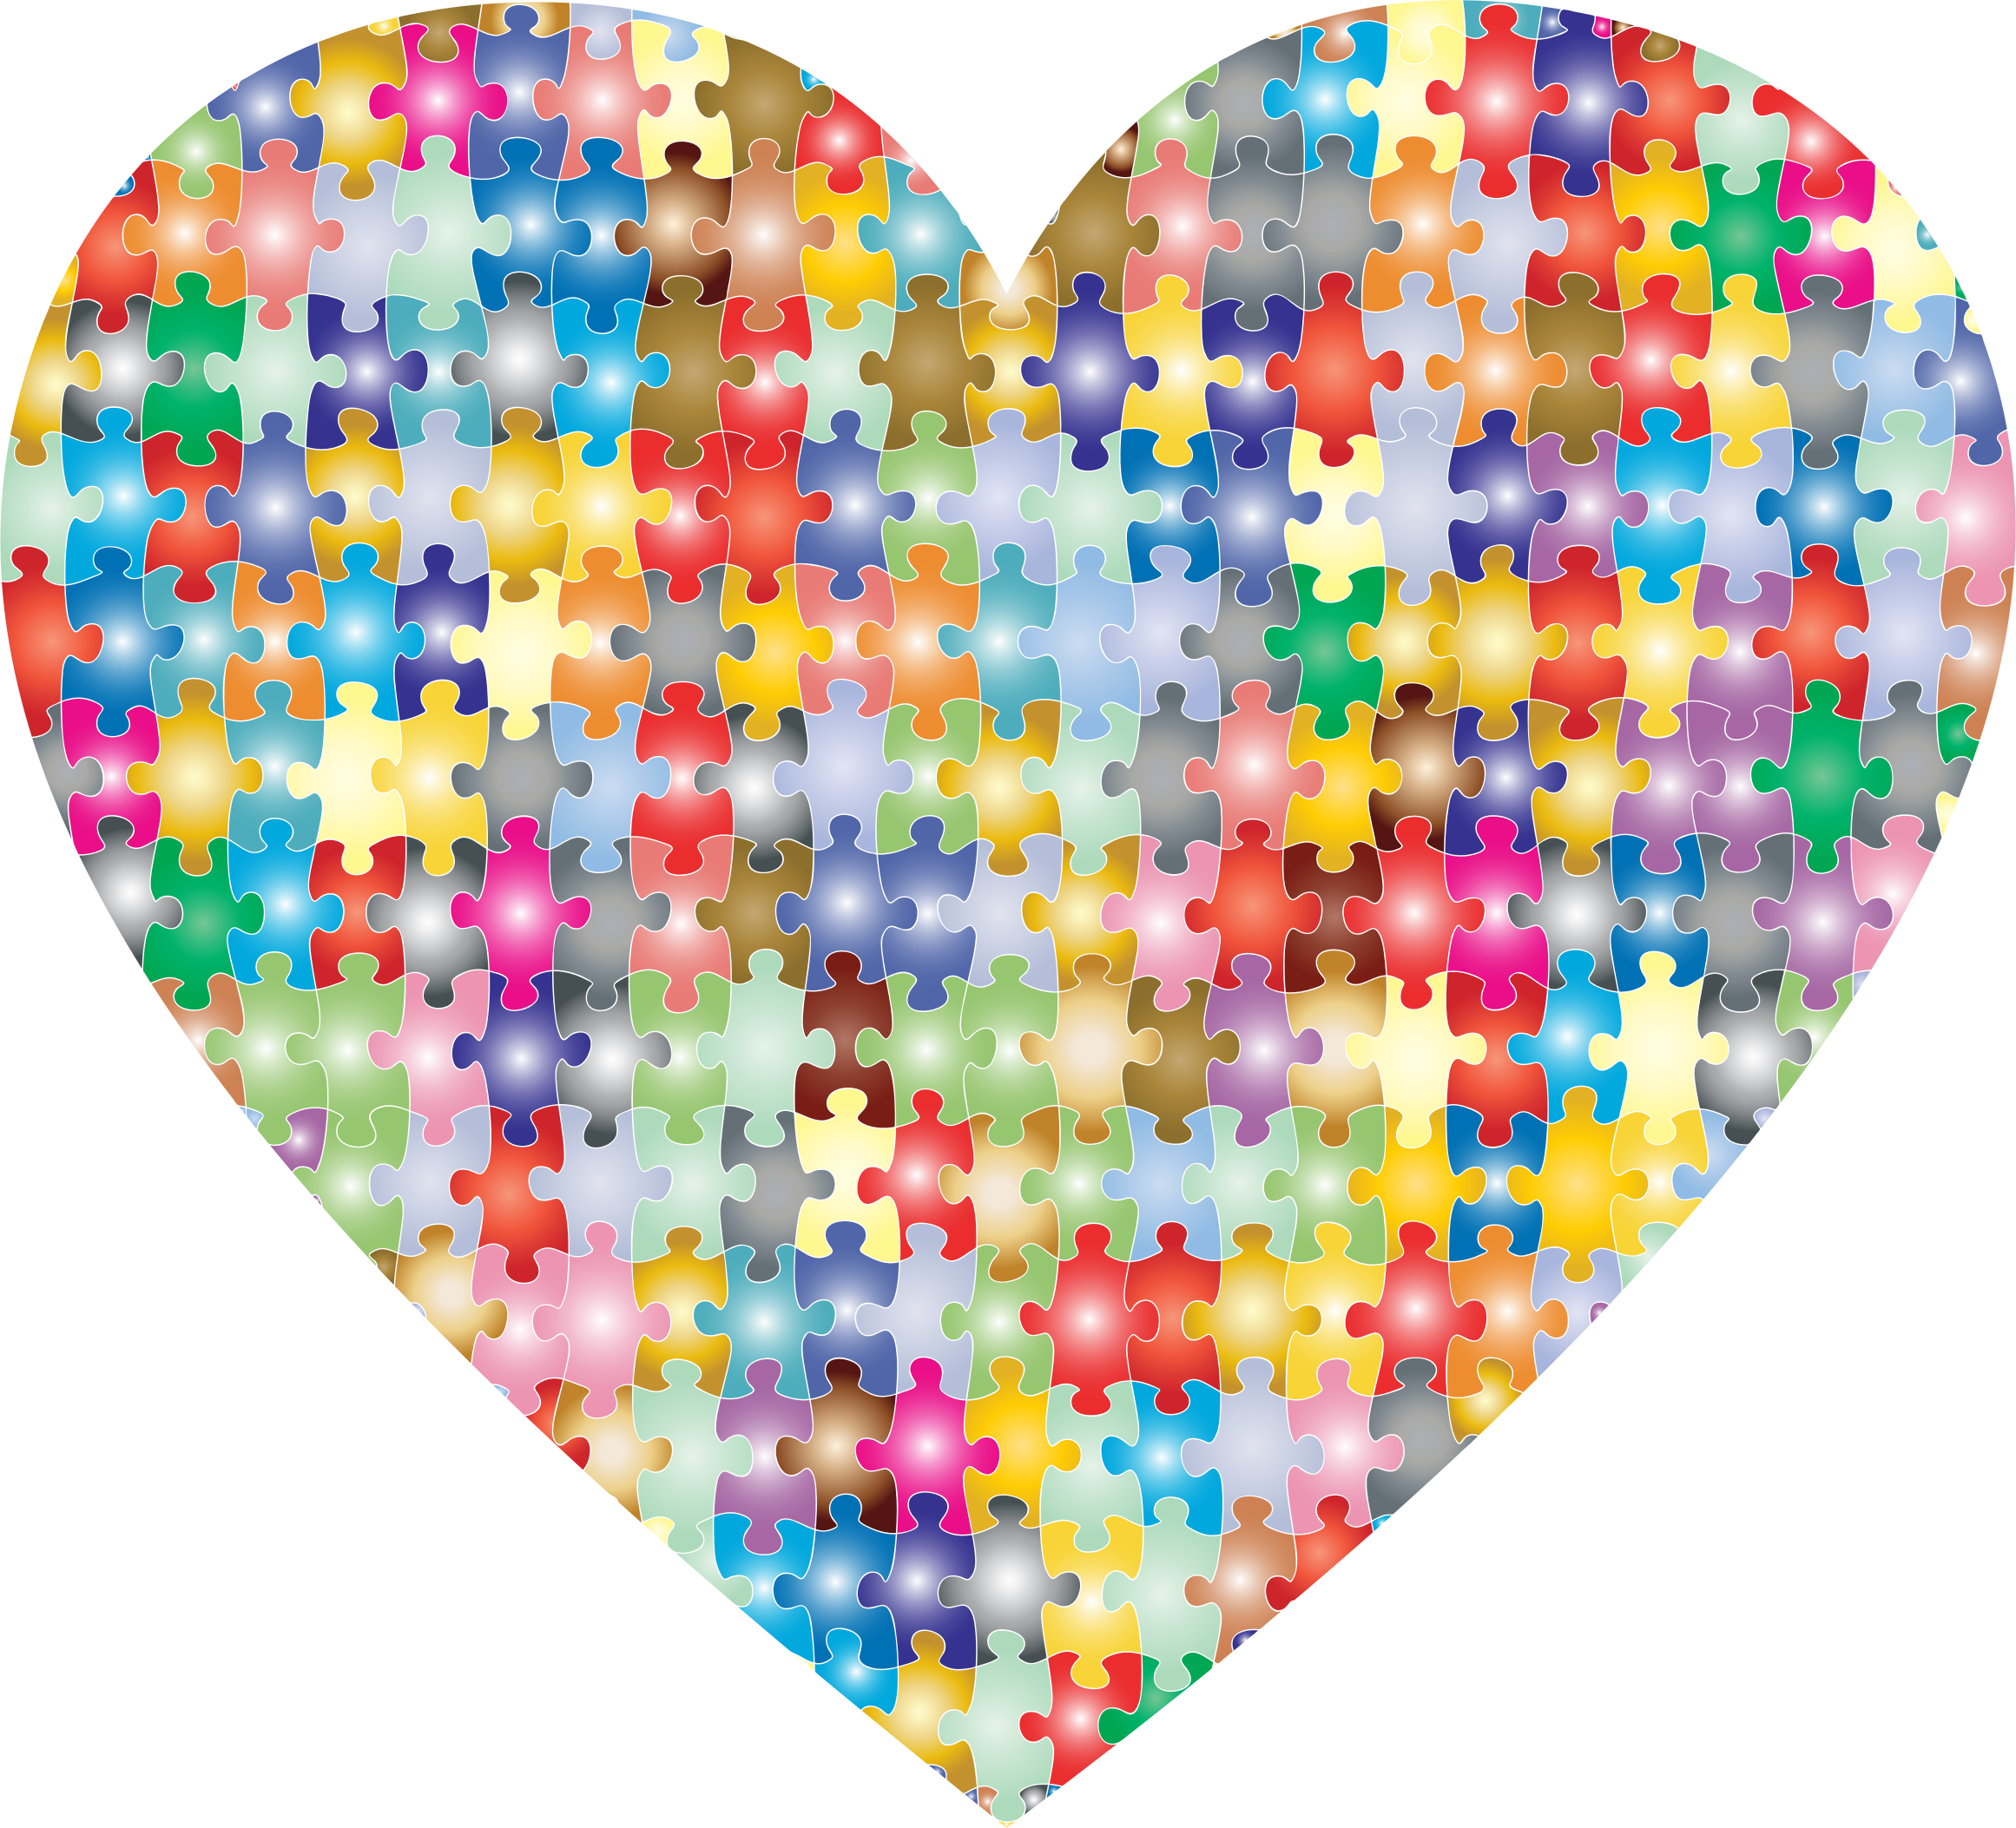 Colorful Puzzle Heart 3 by GDJ